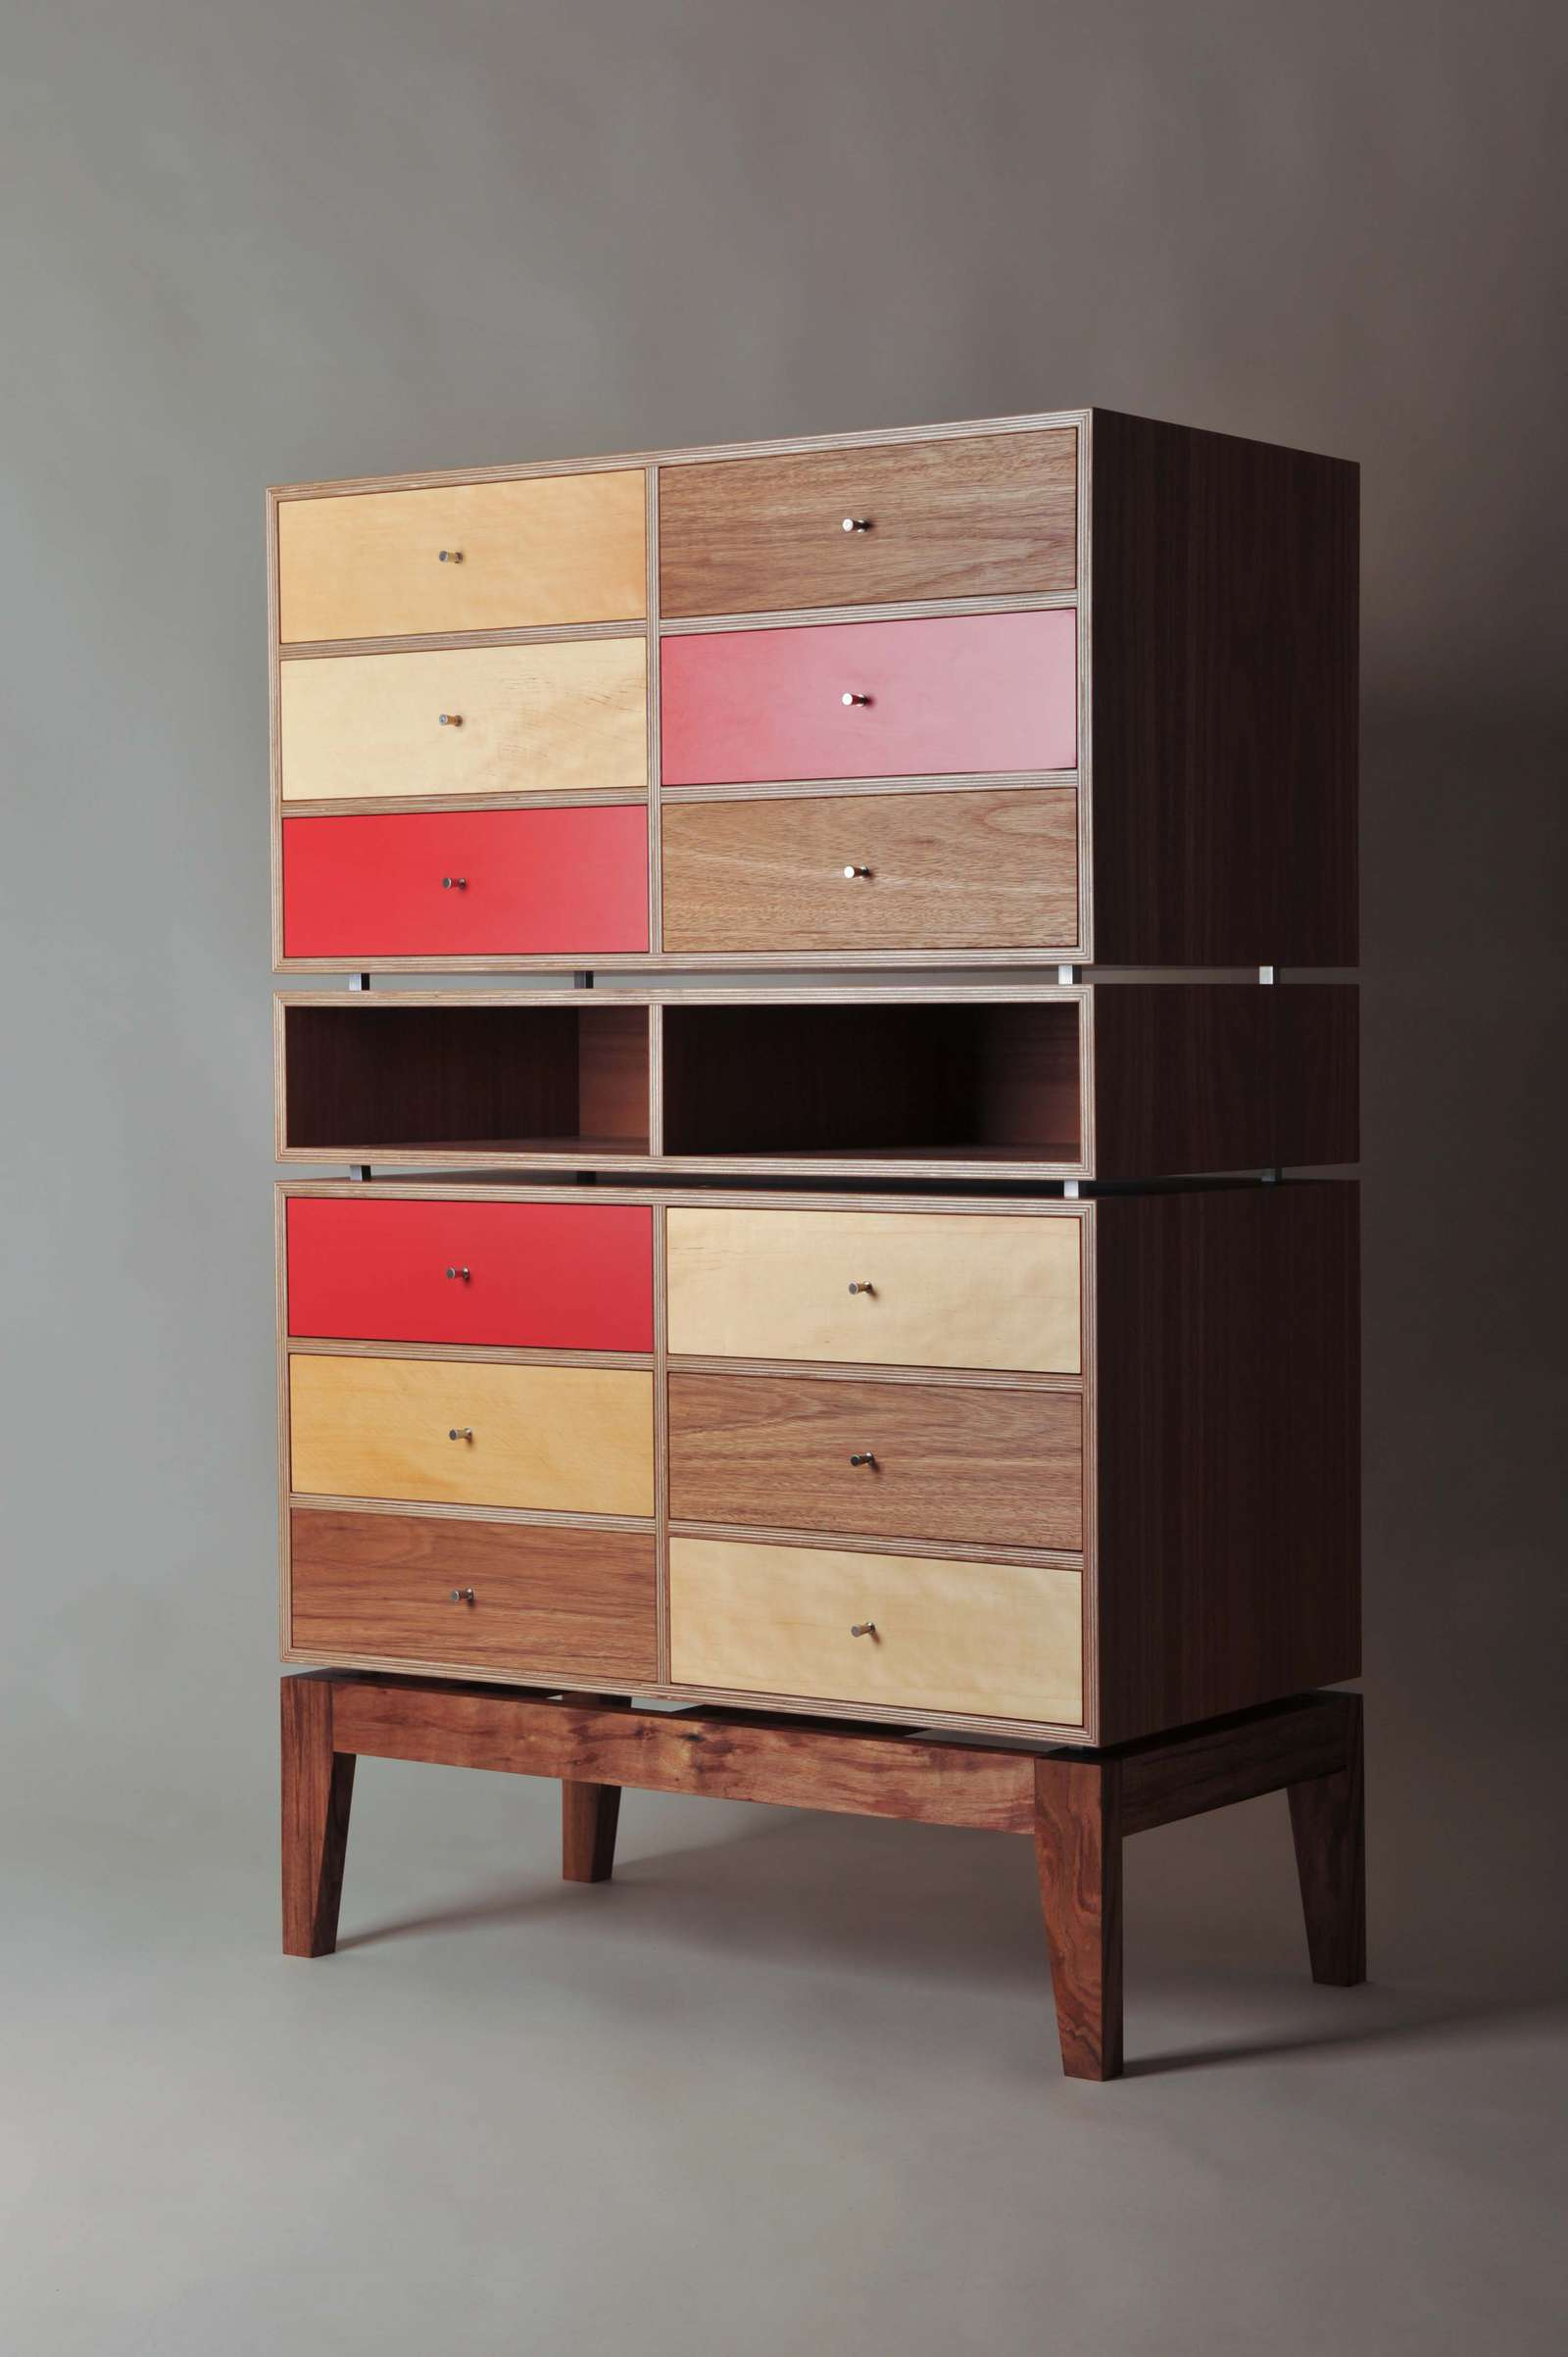 iankea-chest-of-drawers-5 image